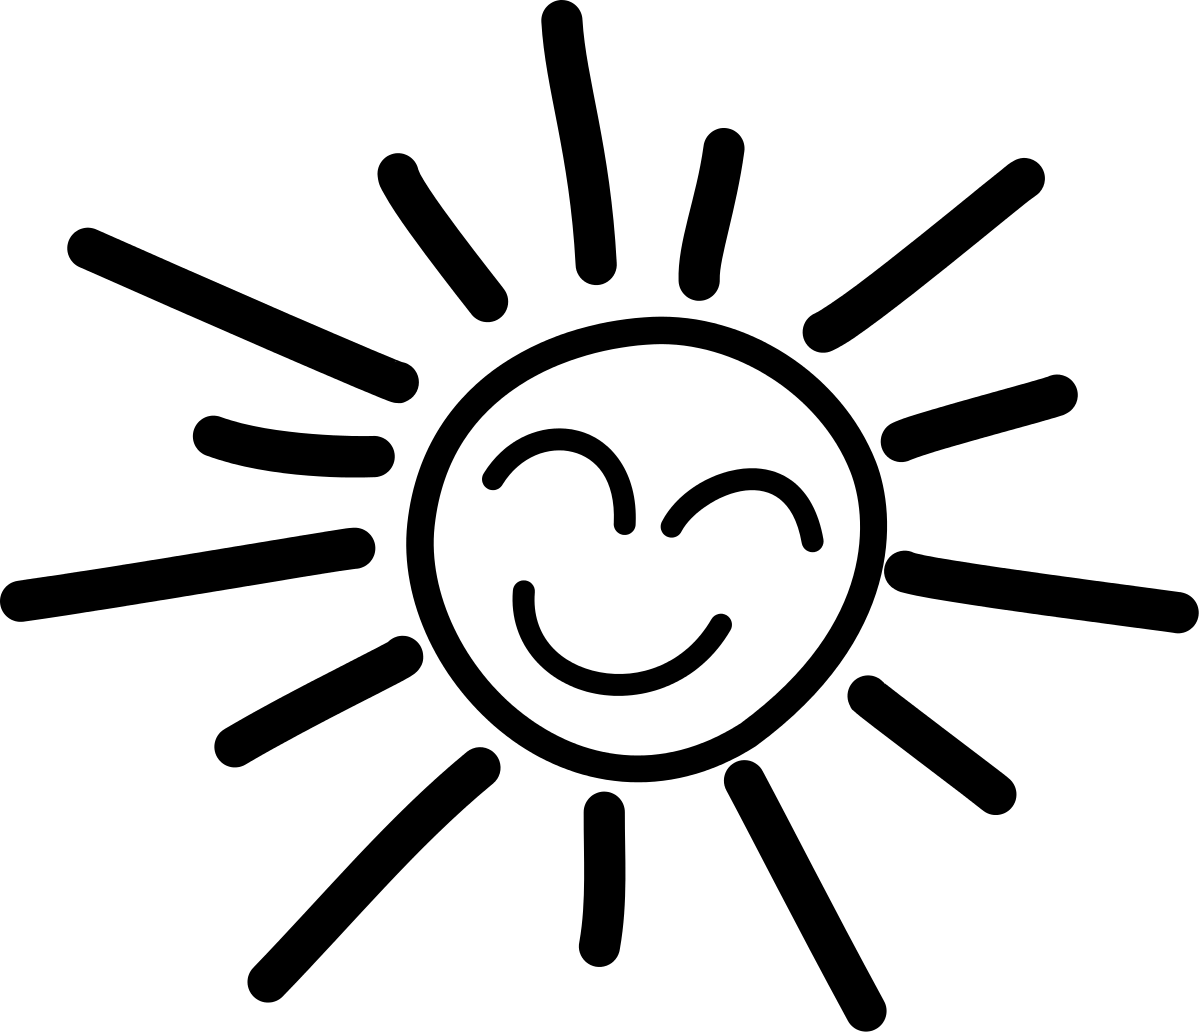 hight resolution of smiling sun clipart black and white